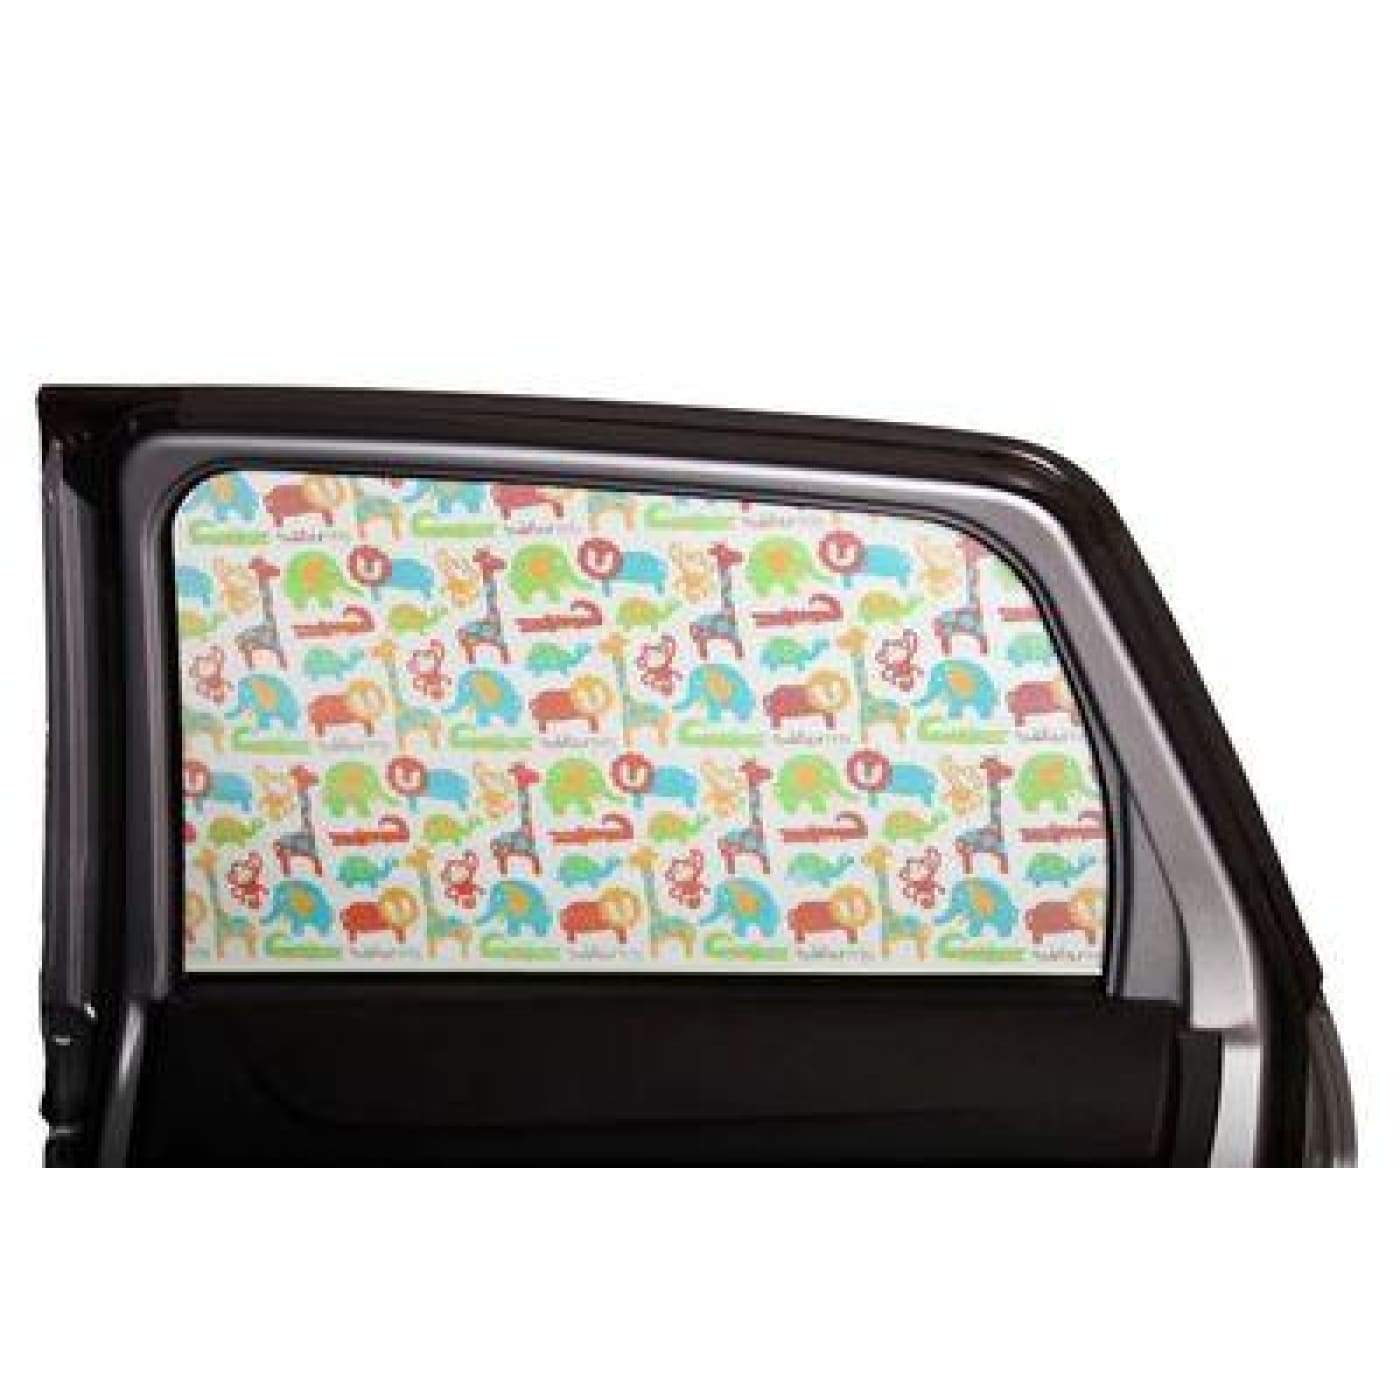 Toddler Tints - Zoo Friends - CAR SEATS - SUNSHADES/WEATHERSHIELDS